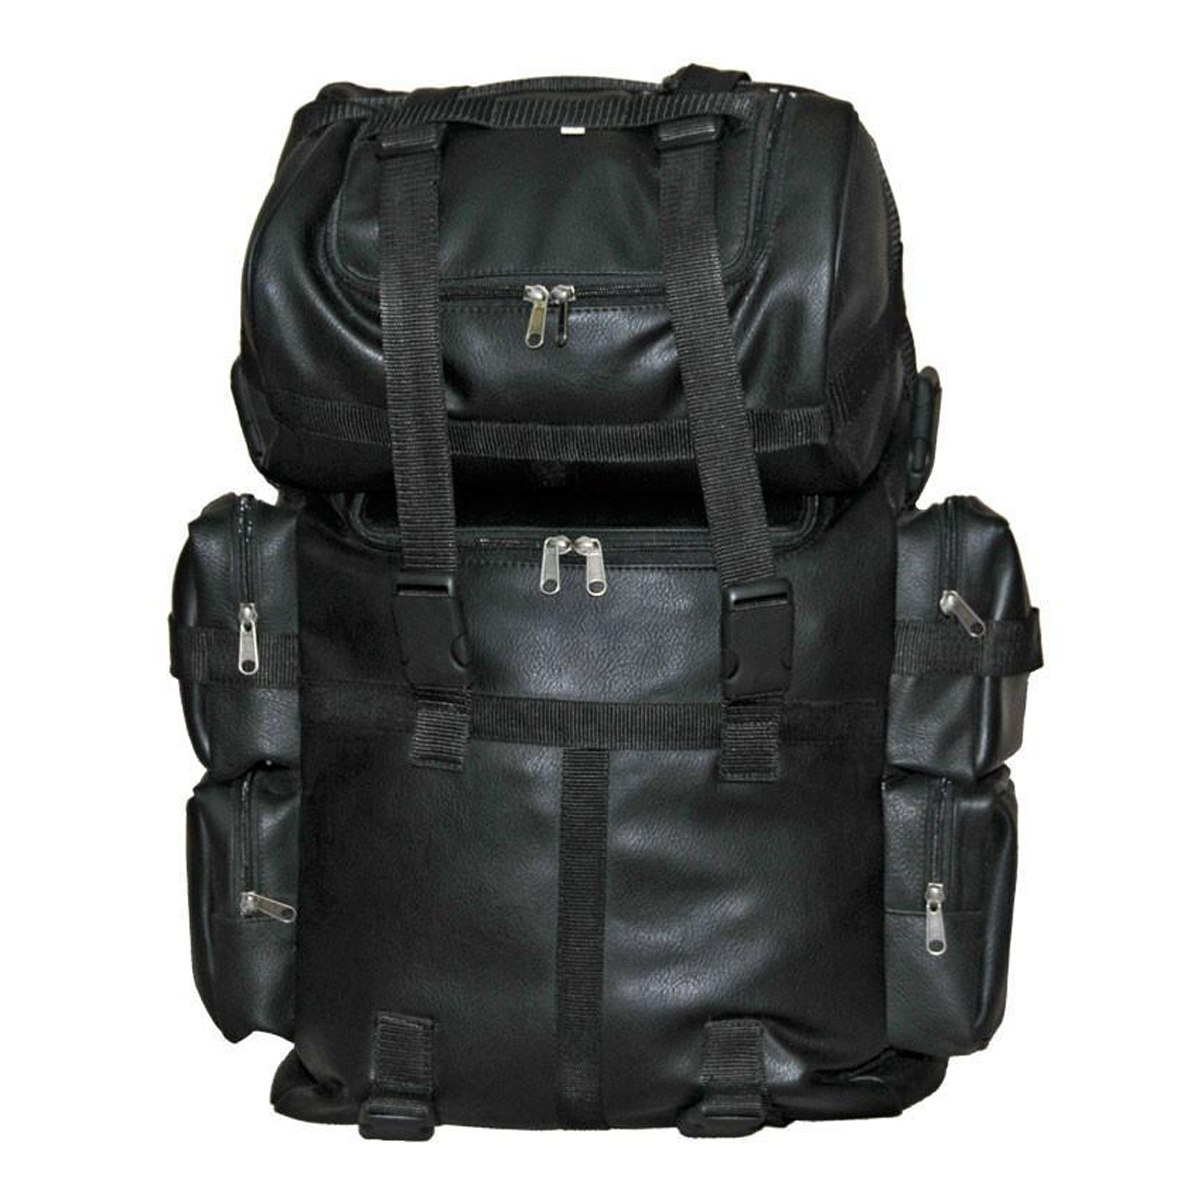 Vance Leather Large 2 Piece Sissy Bar Bag with Backpack